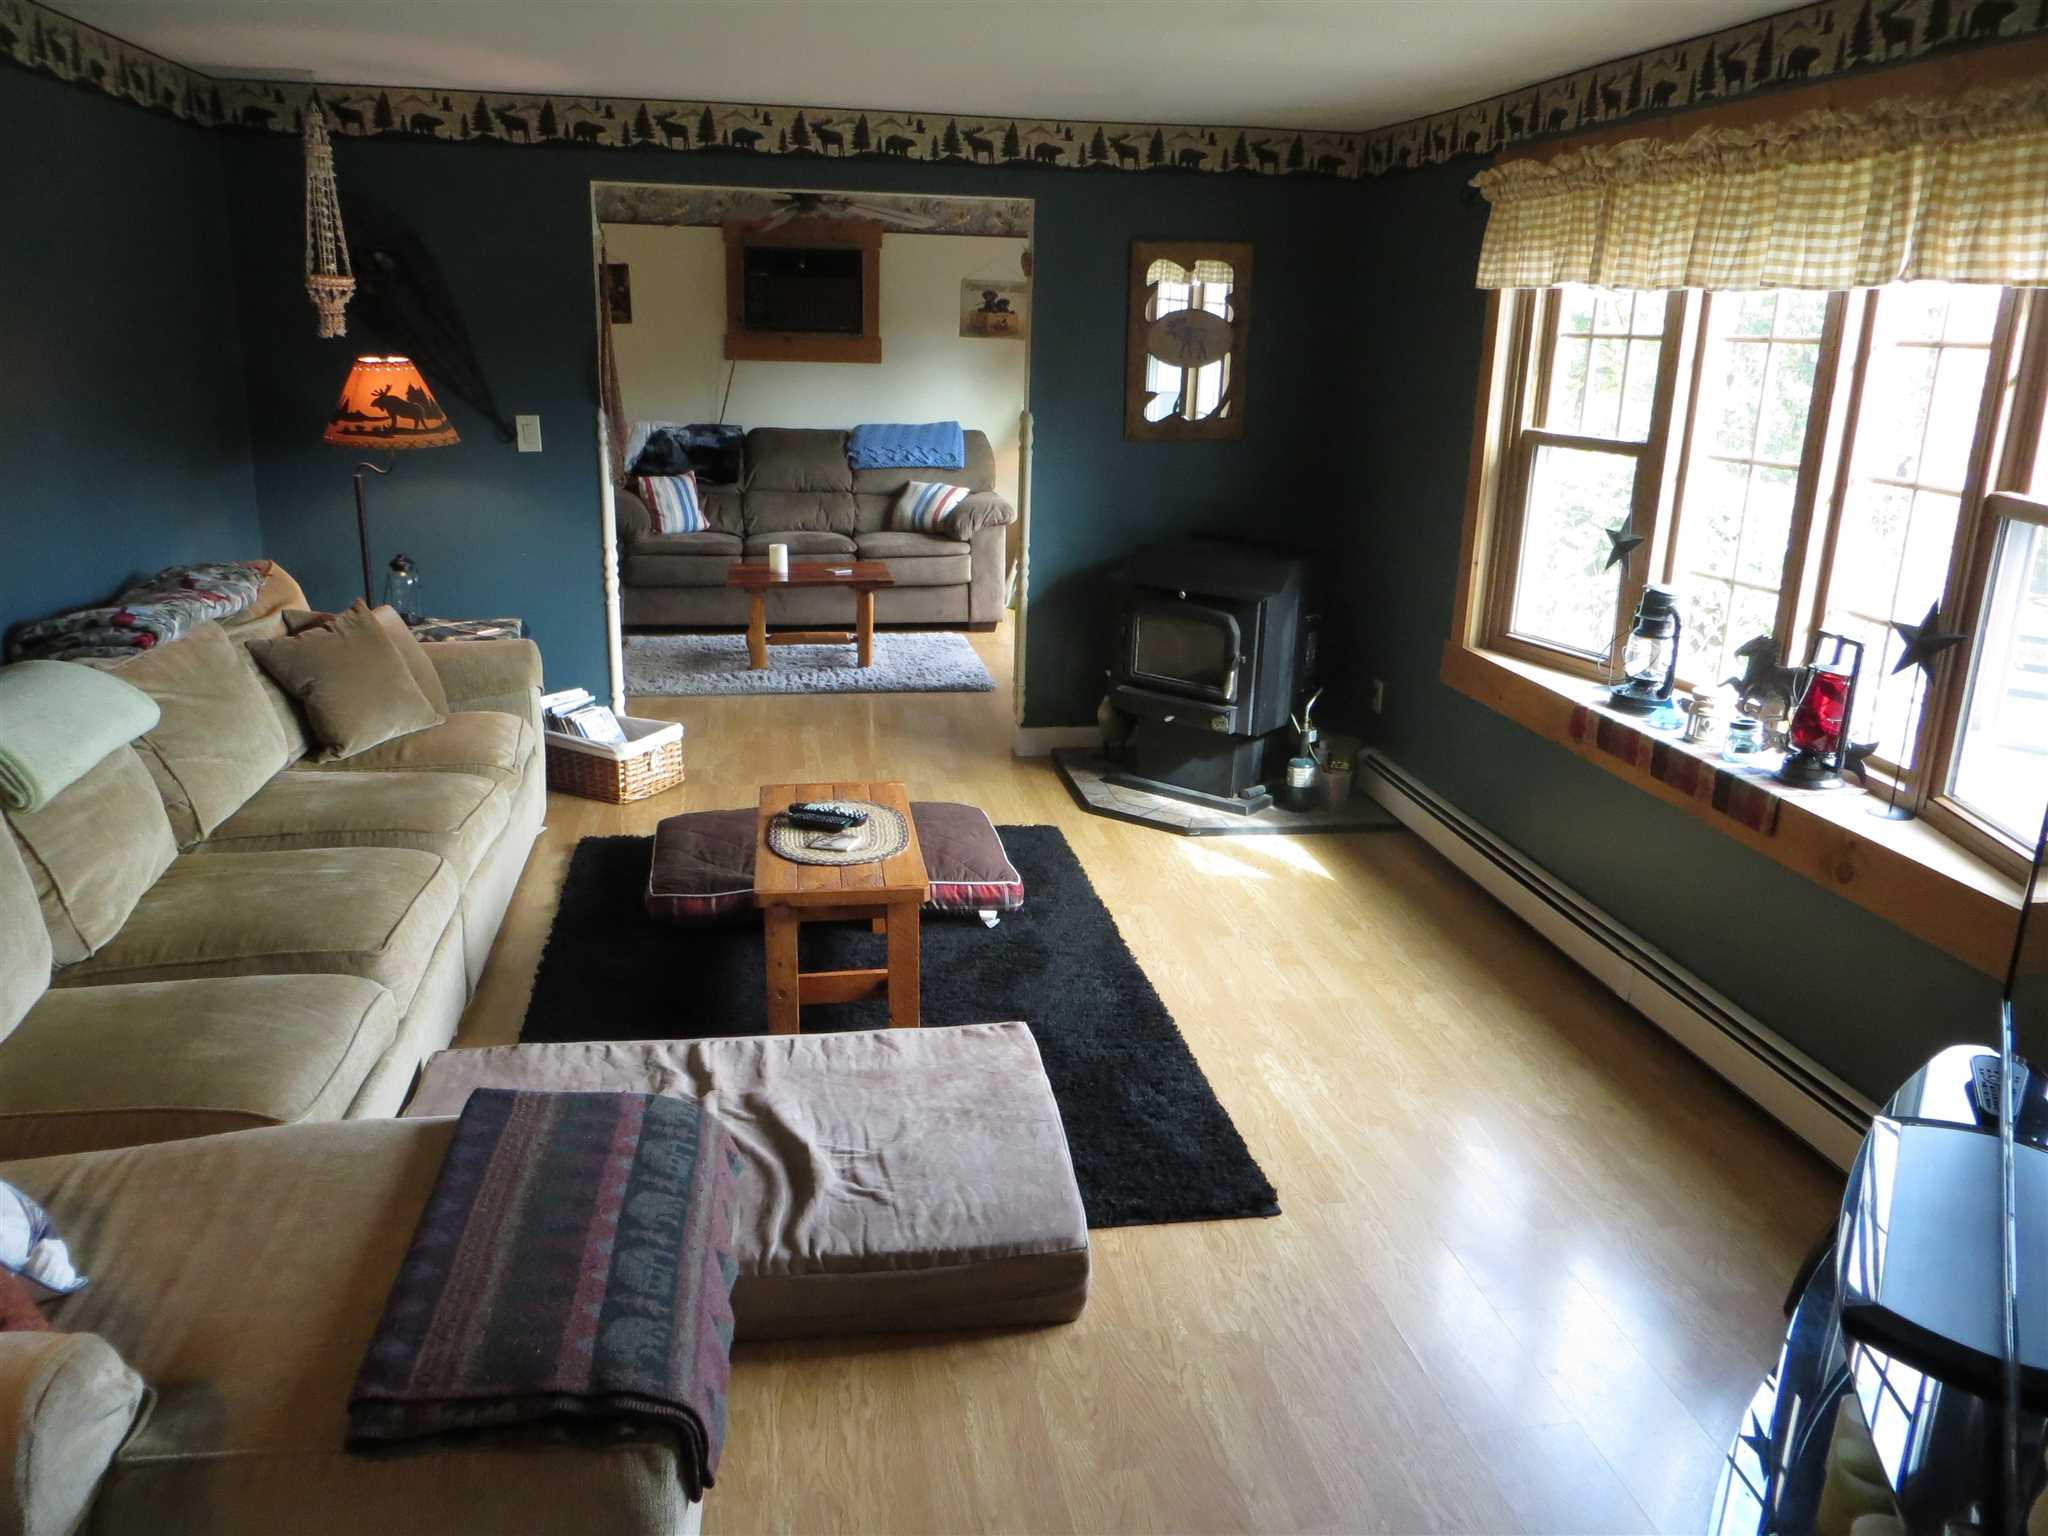 Additional photo for property listing at 53 HULL 53 HULL Gallatin, New York 12523 United States